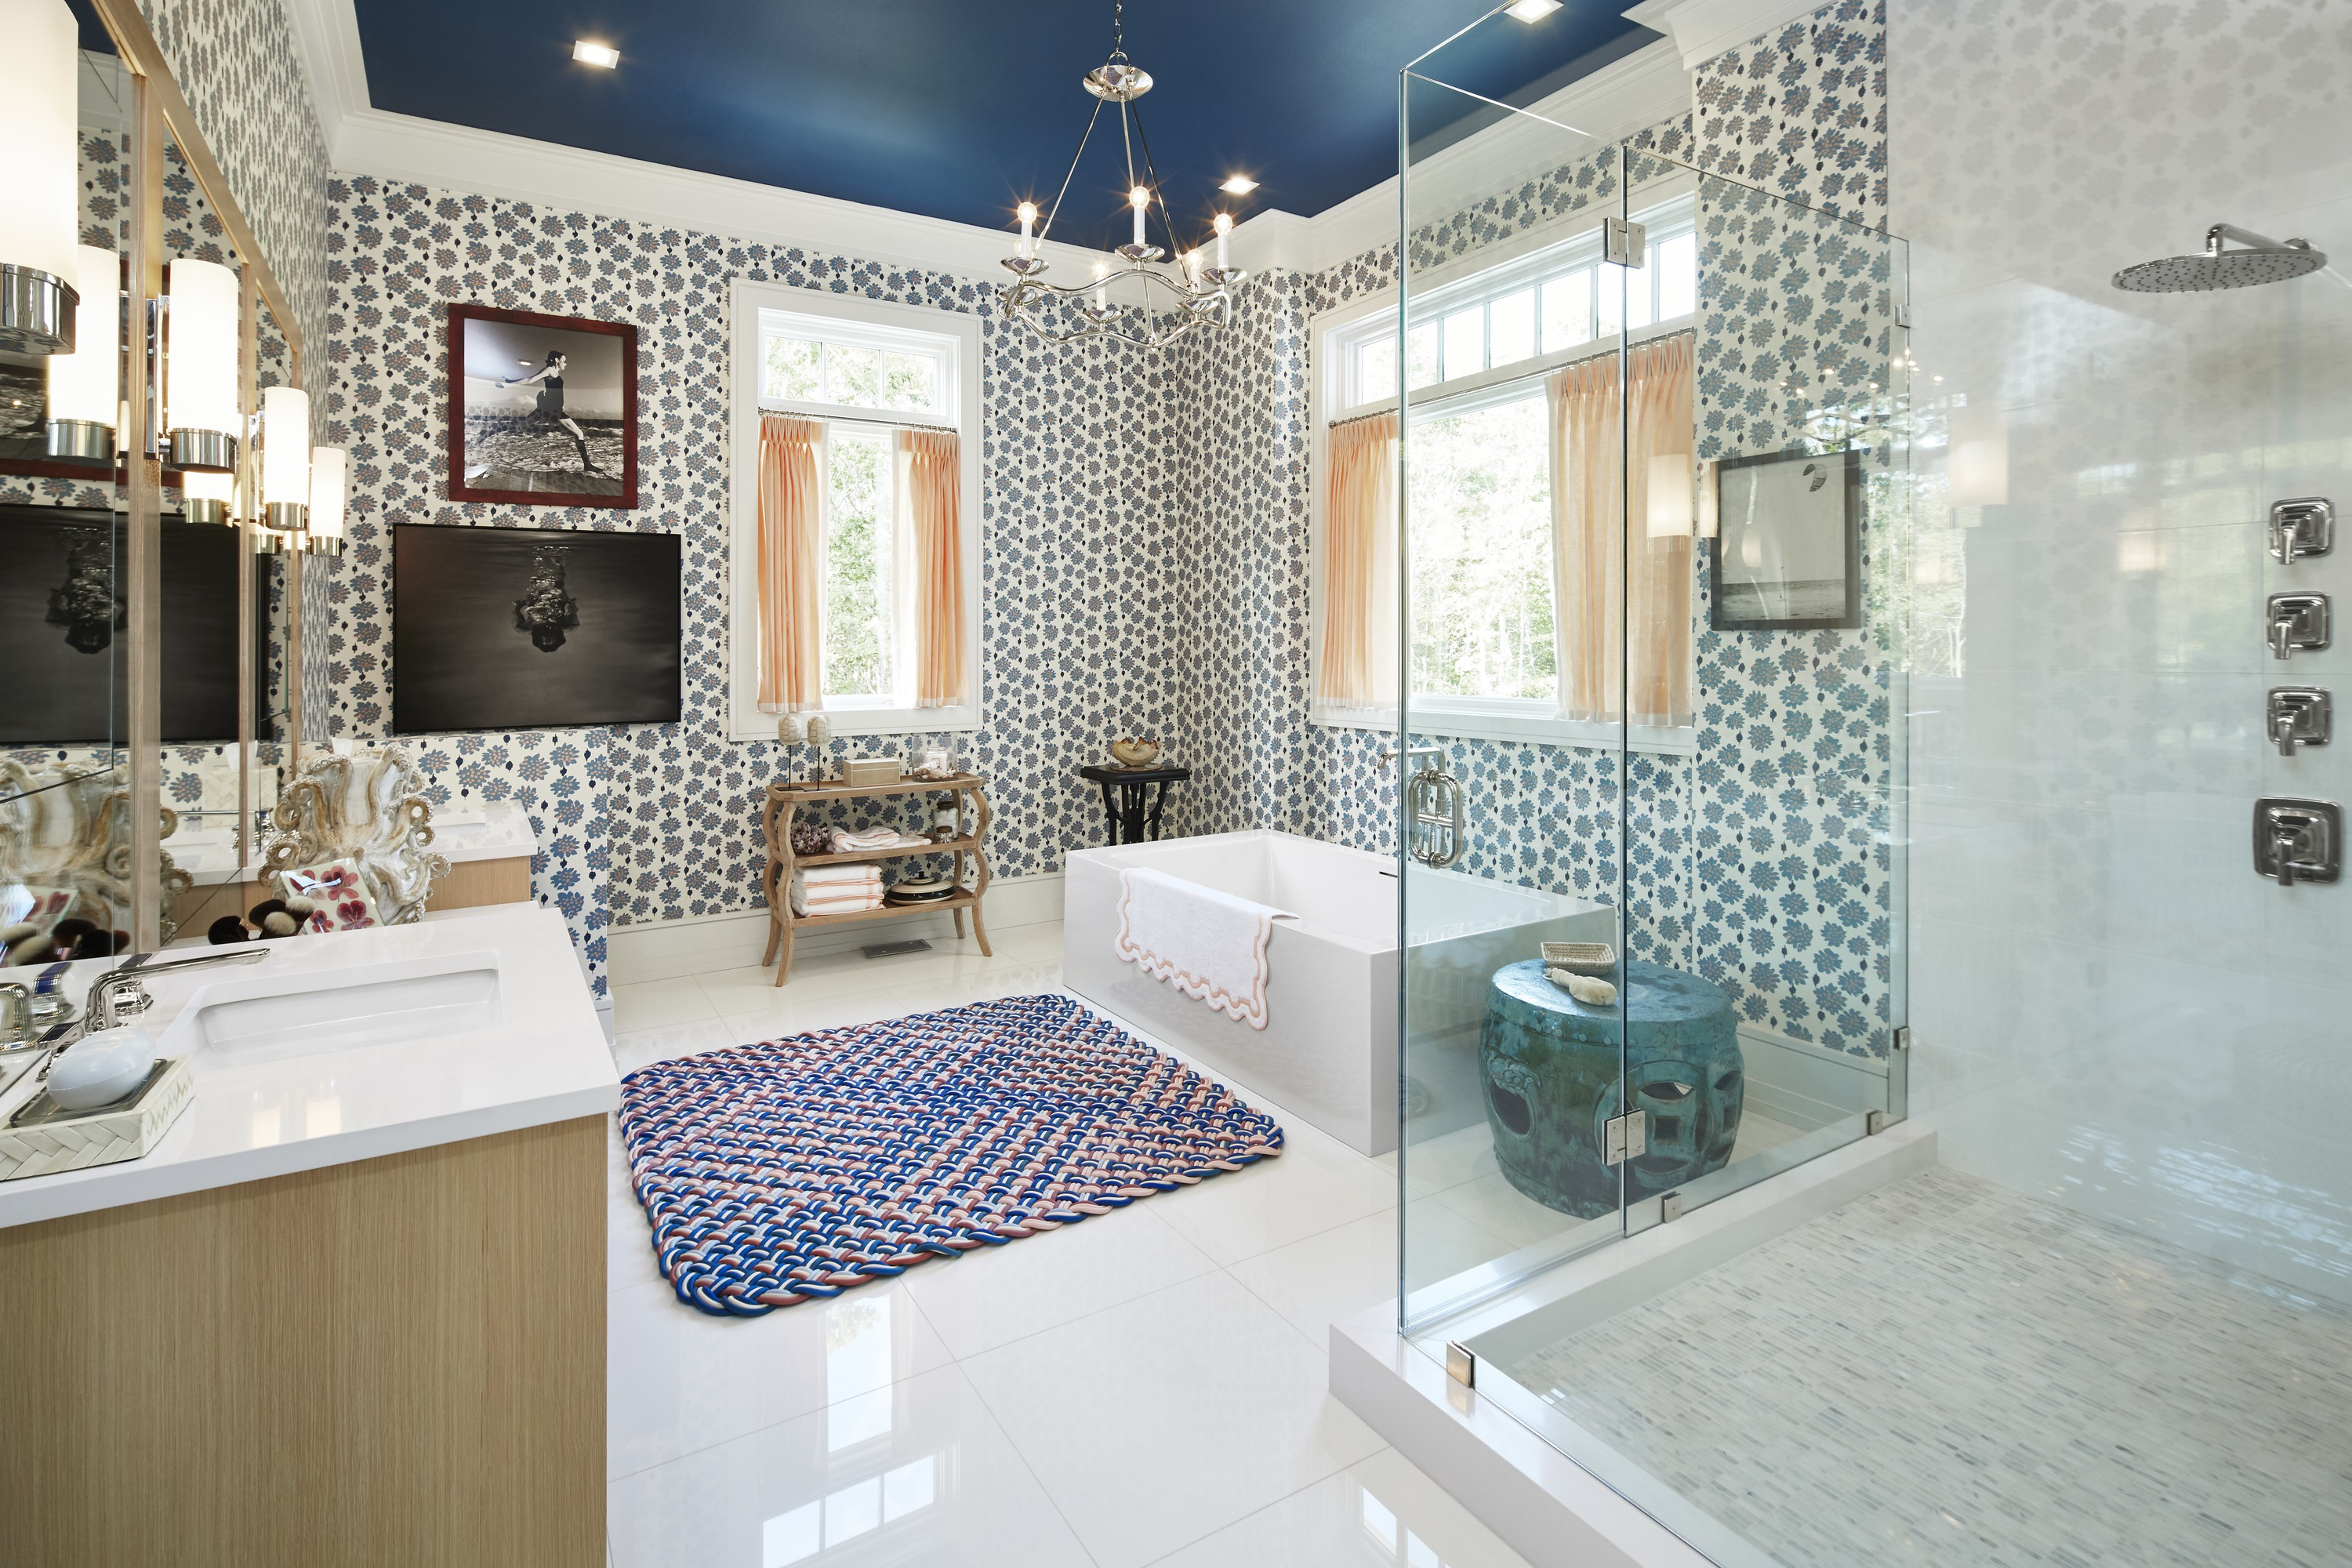 One Freestanding Bath     One Raindome Showerhead     Per Se Faucet     With a wonderful mix of abstract floral patterning and refined details, Tilton Fenwick's master bathroom conveys a sense of sophisticated whimsy.